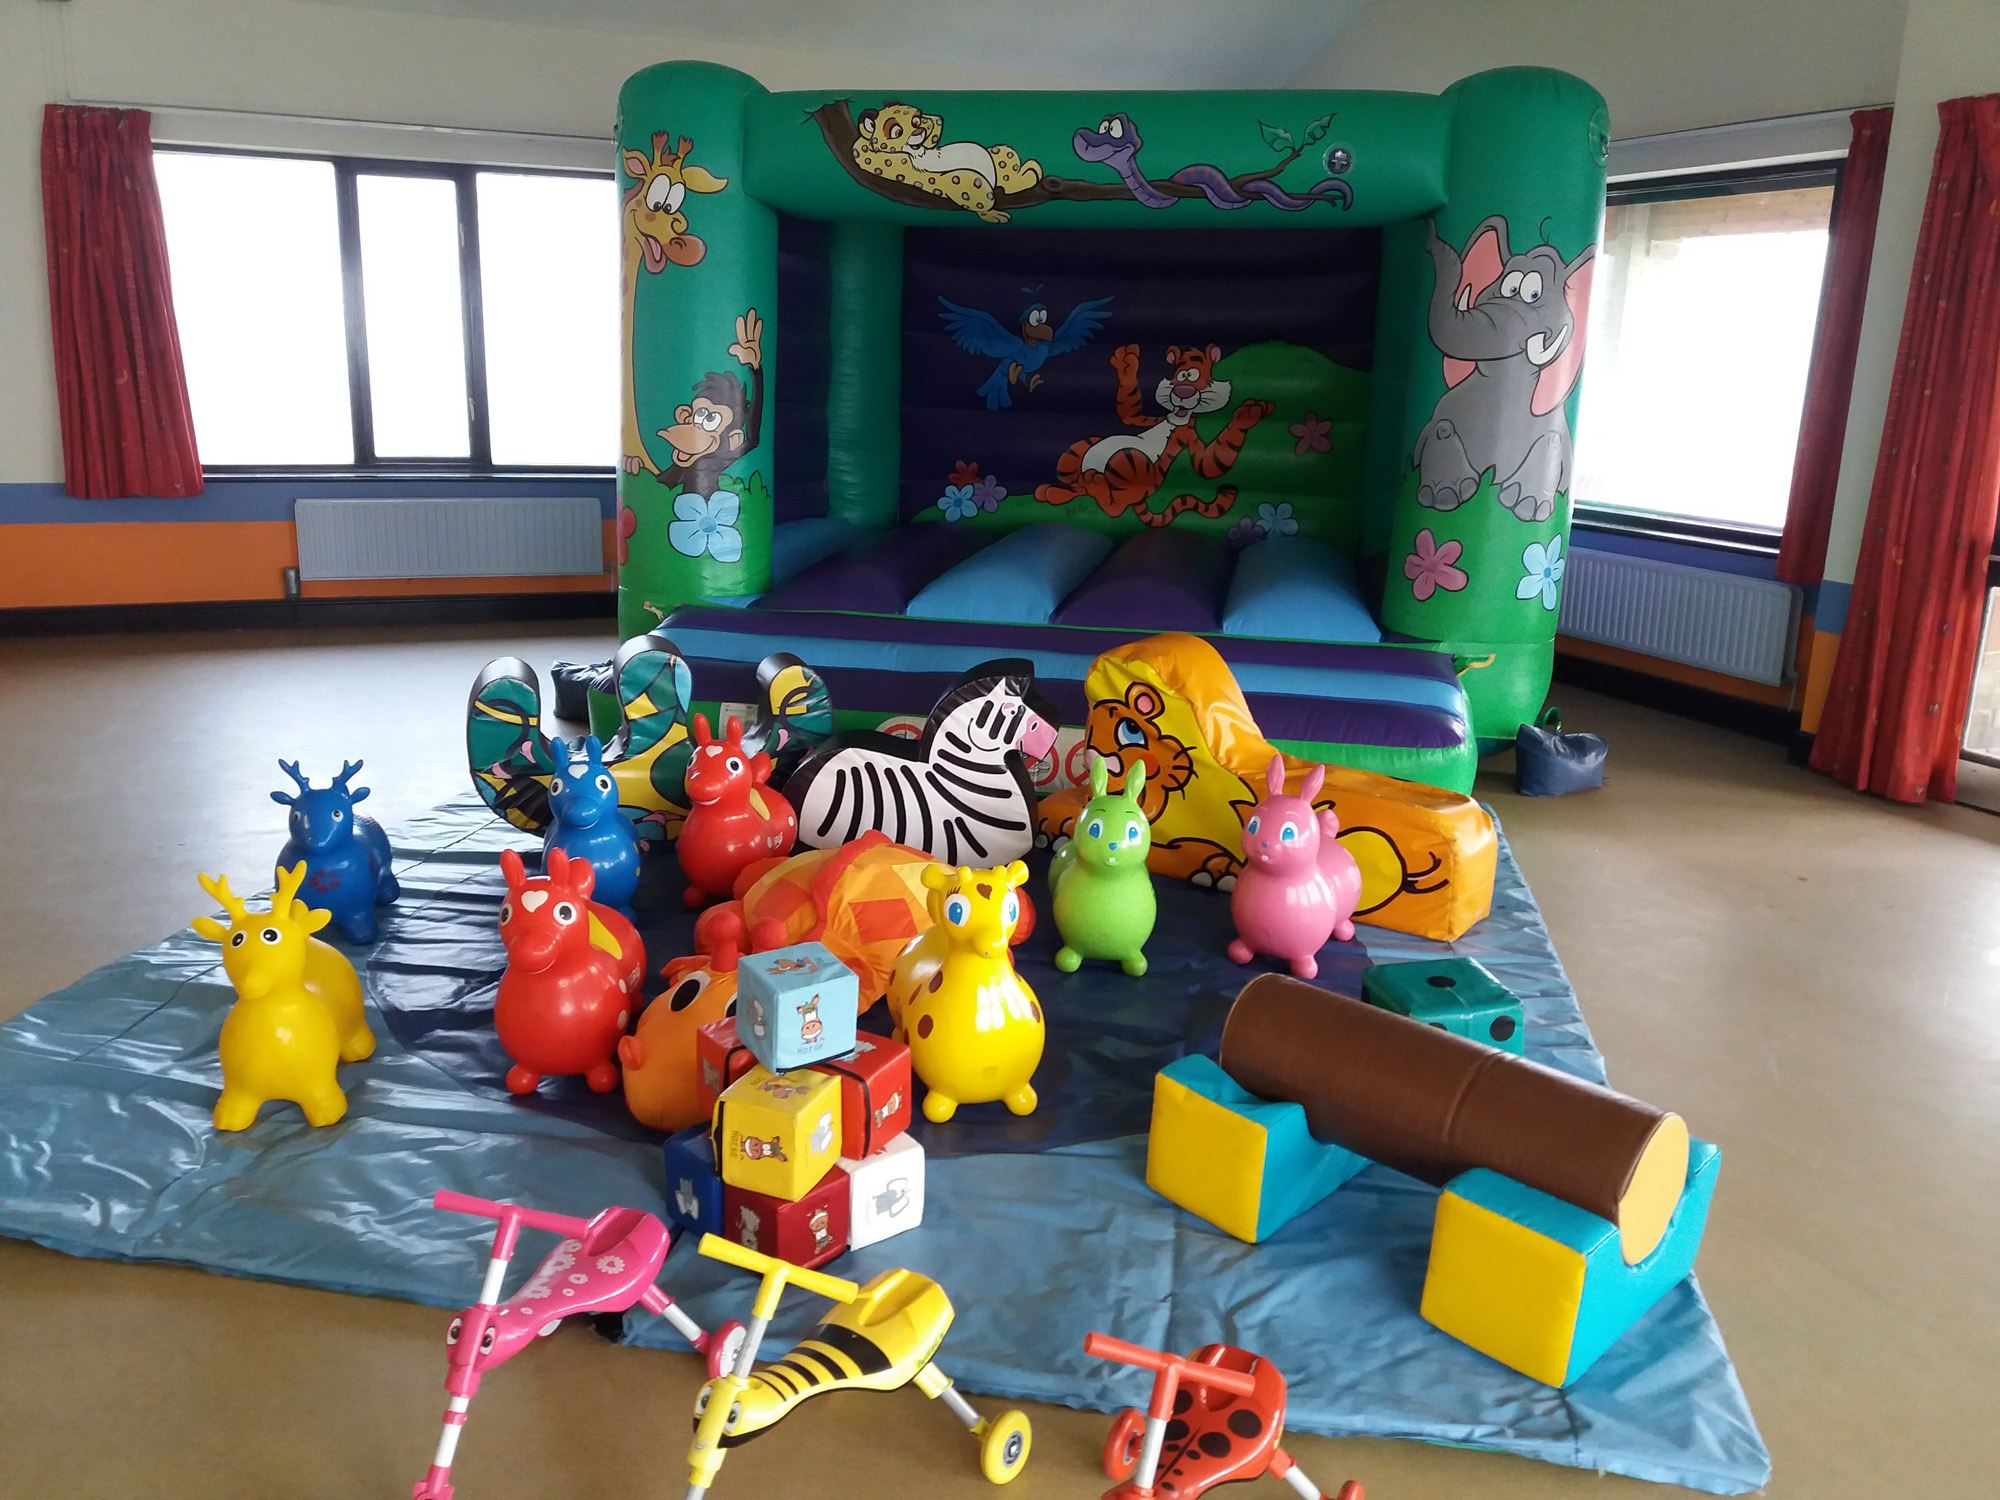 Jungle bouncy castle for hire at Norman Rodaway hall in Hedge End